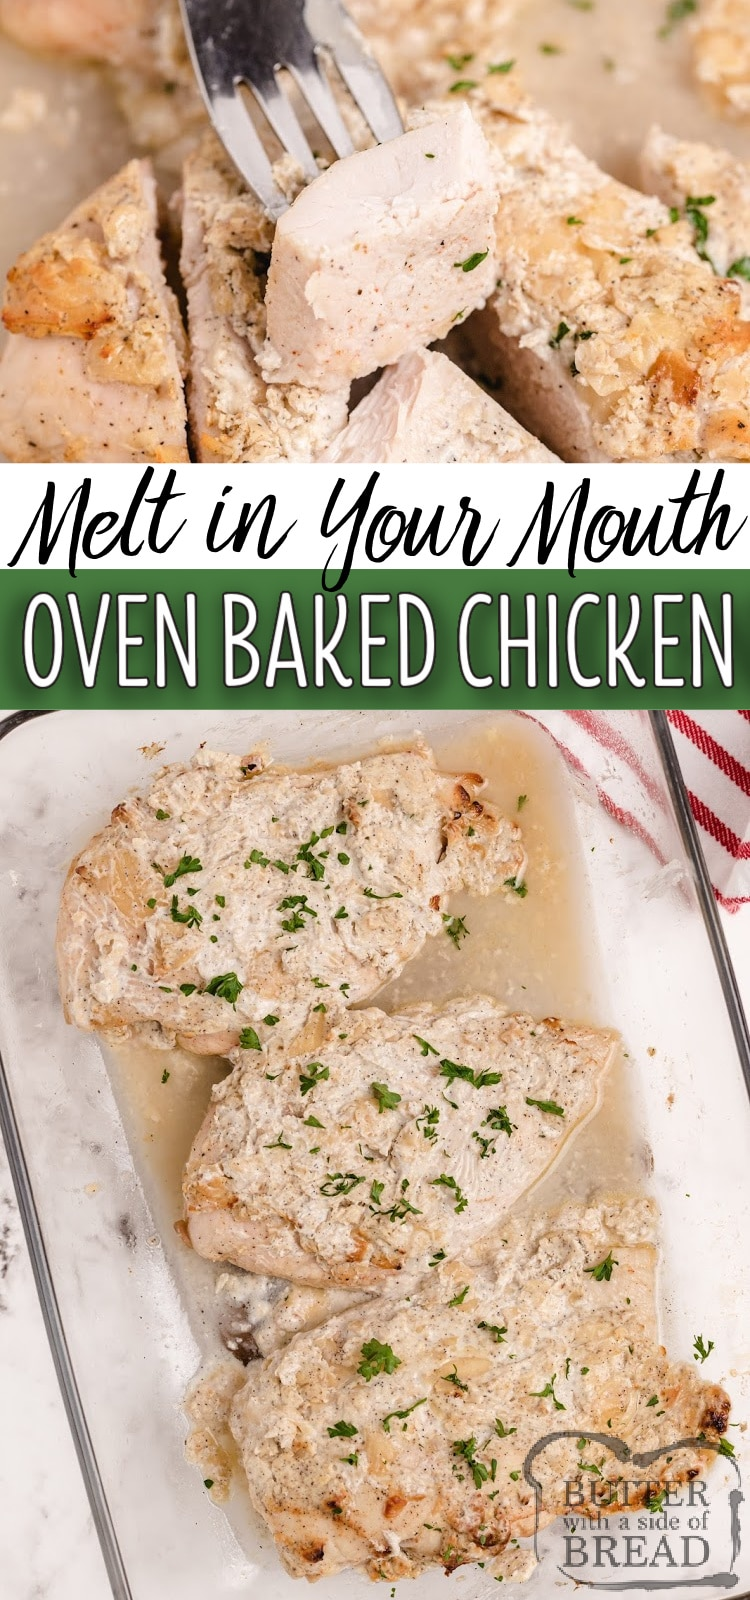 Oven Baked Chicken Breasts coated in Greek yogurt, Parmesan cheese and seasonings for a delicious baked chicken breast recipe that everyone loves! This chicken is juicy, flavorful, healthy and high in protein.